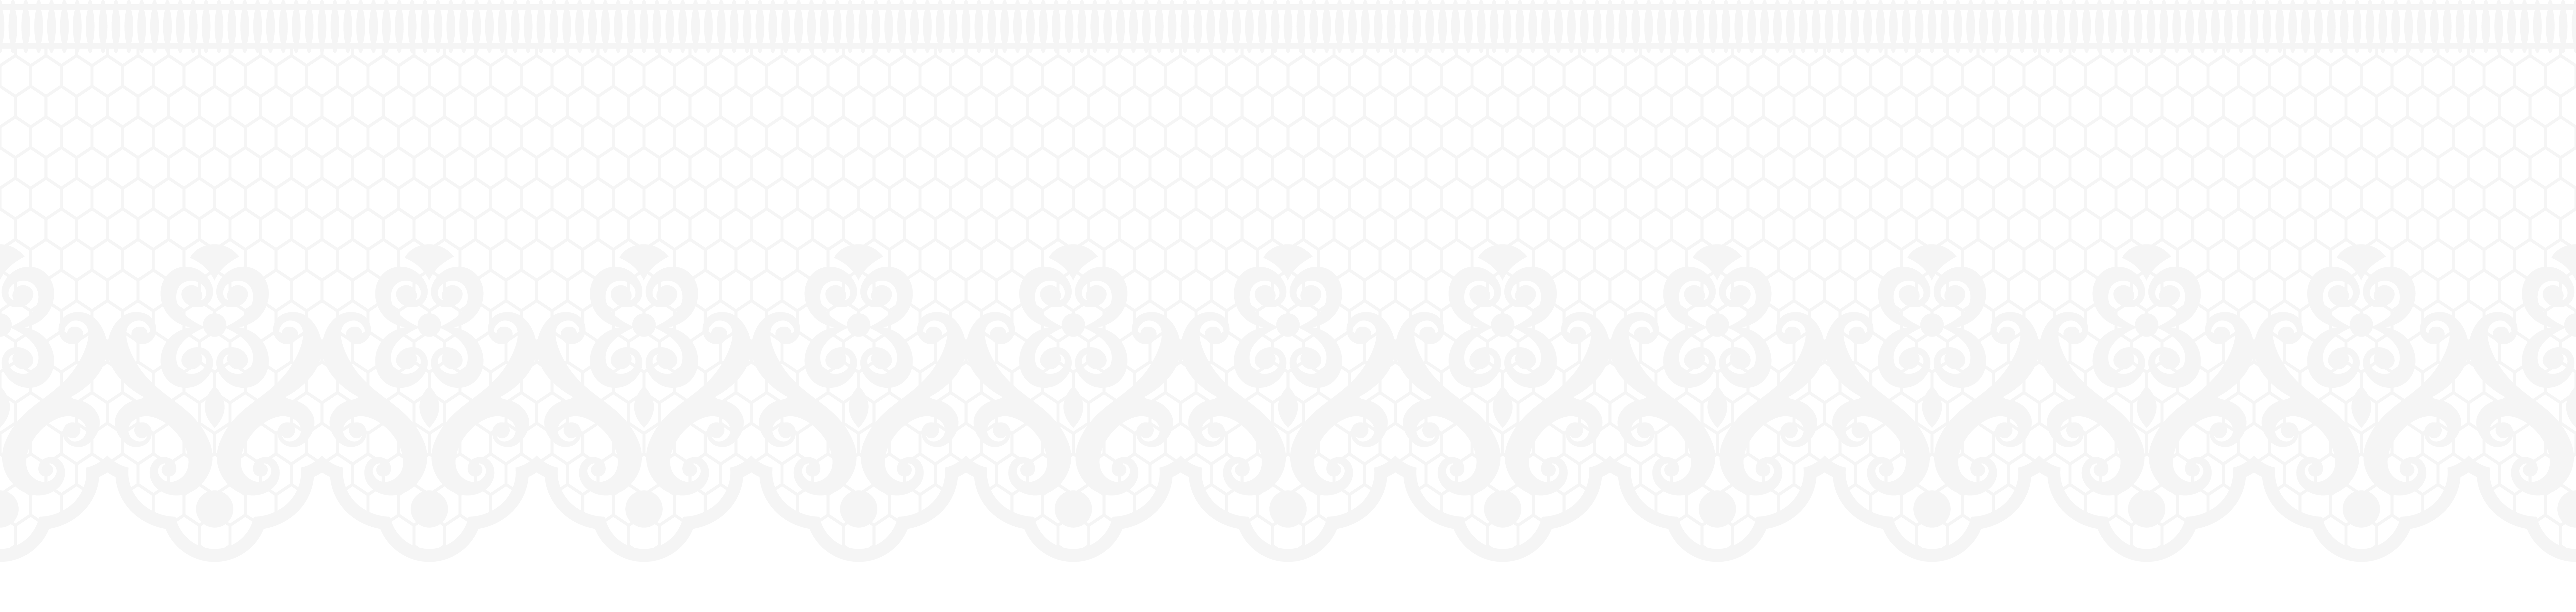 Black lace border png. And white product pattern